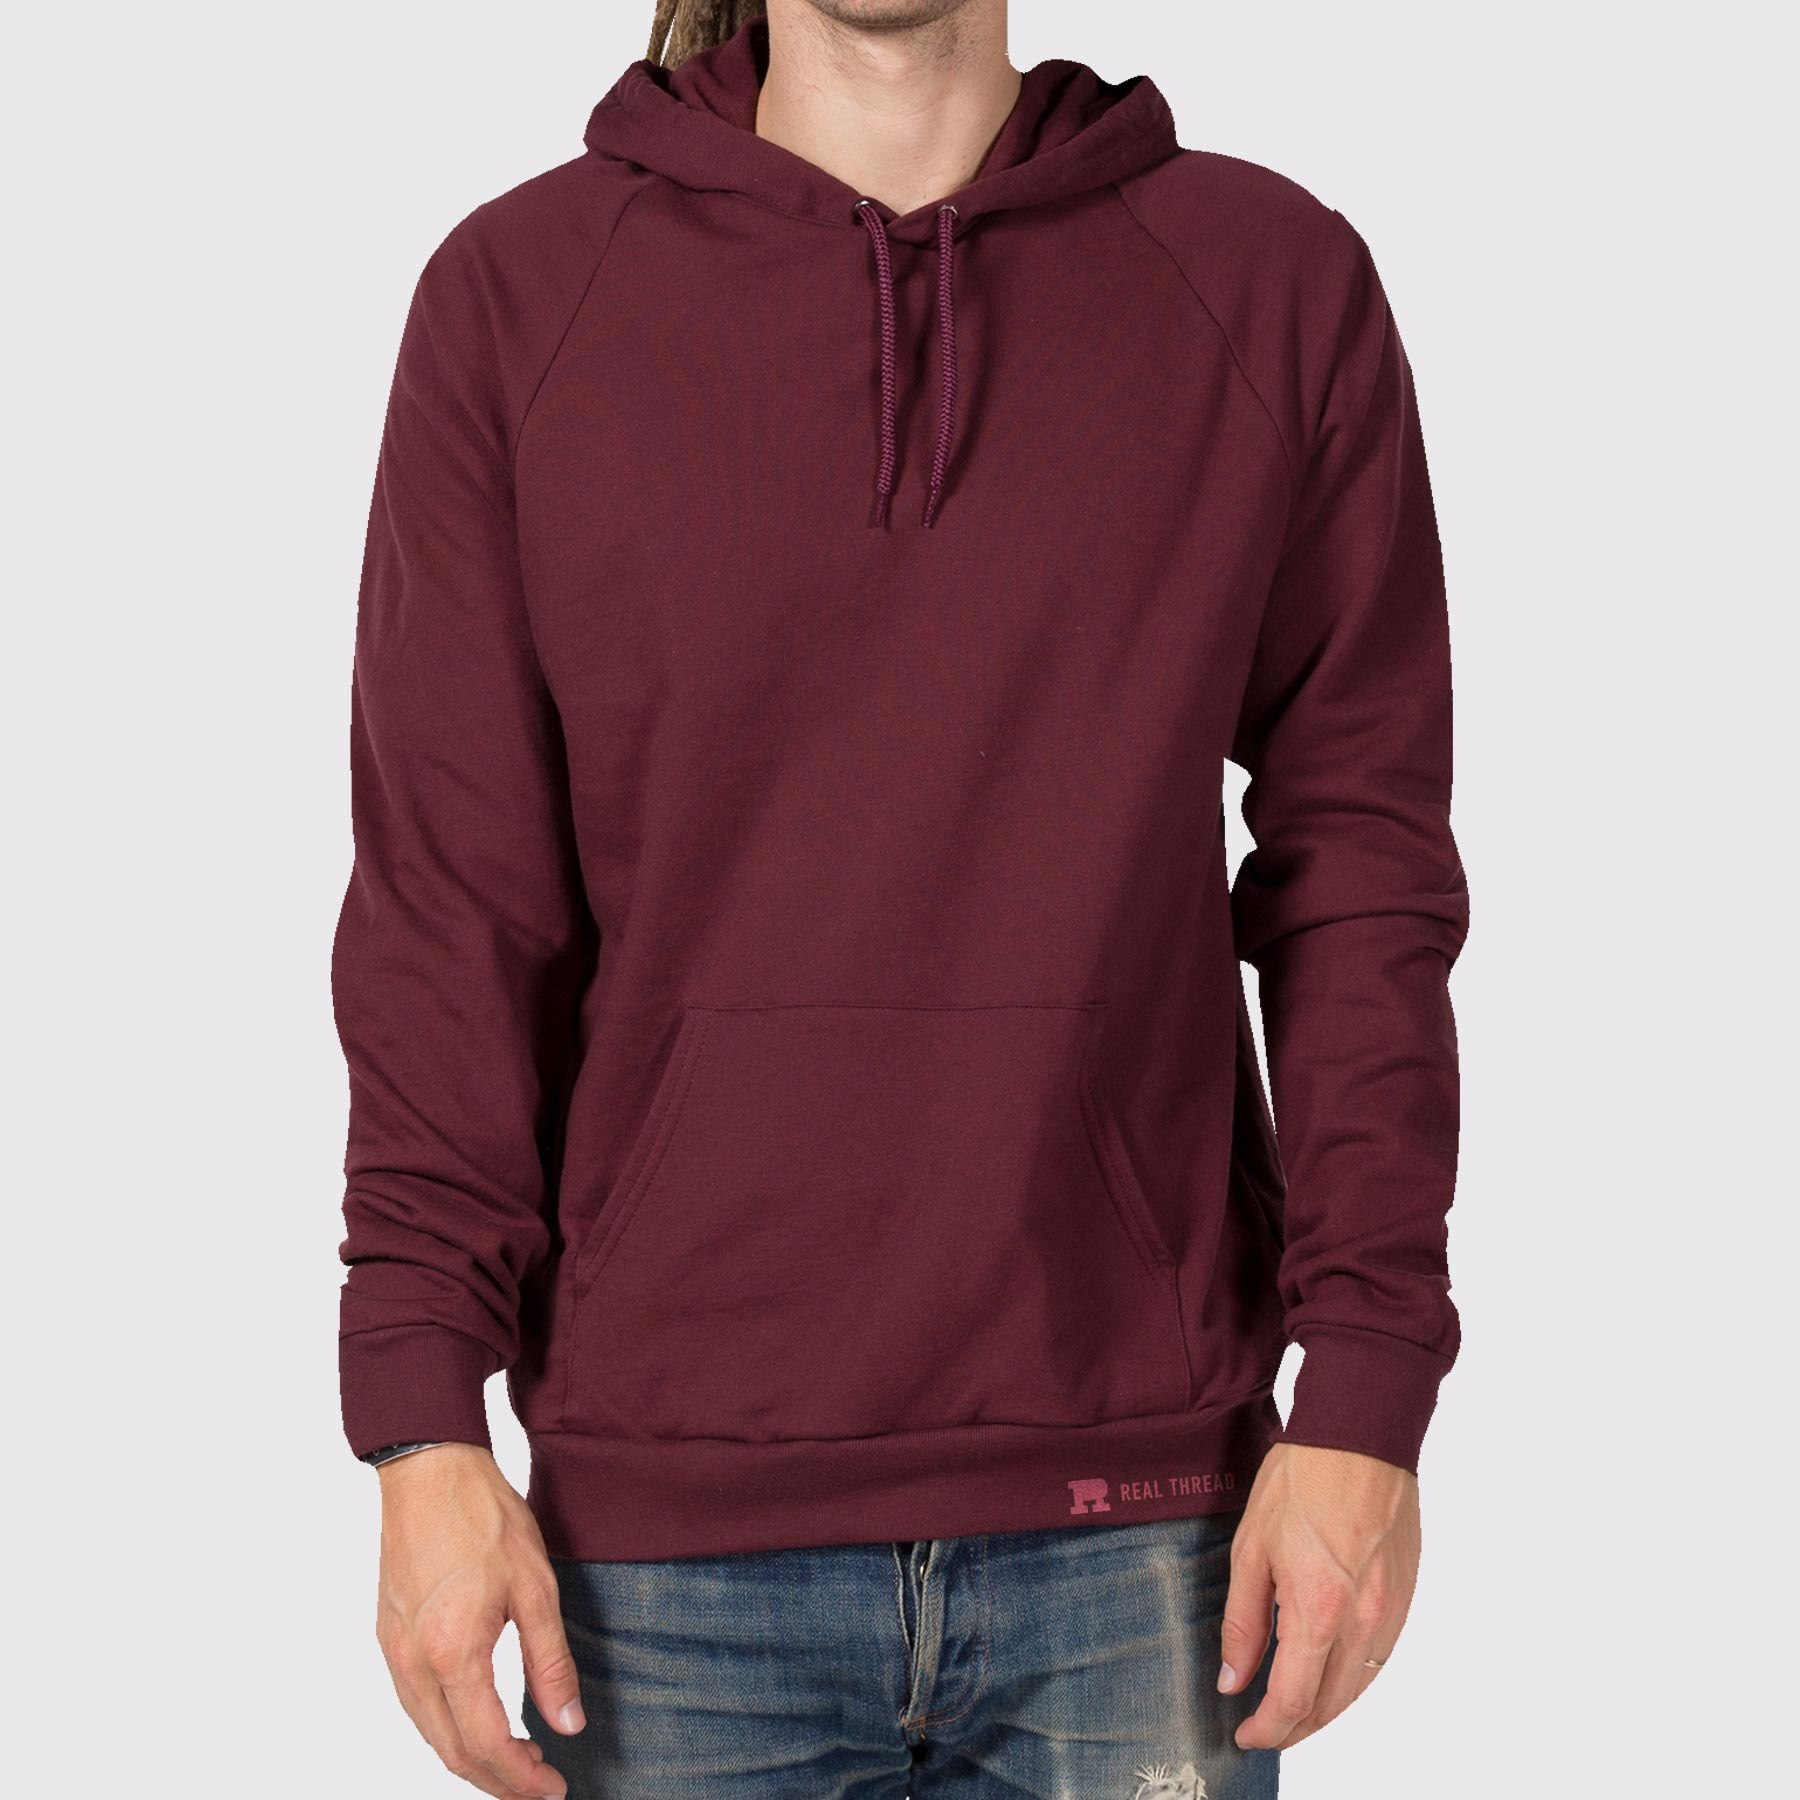 Free Tshirt Templates  Resources  Real Thread For Blank Black Hoodie Template